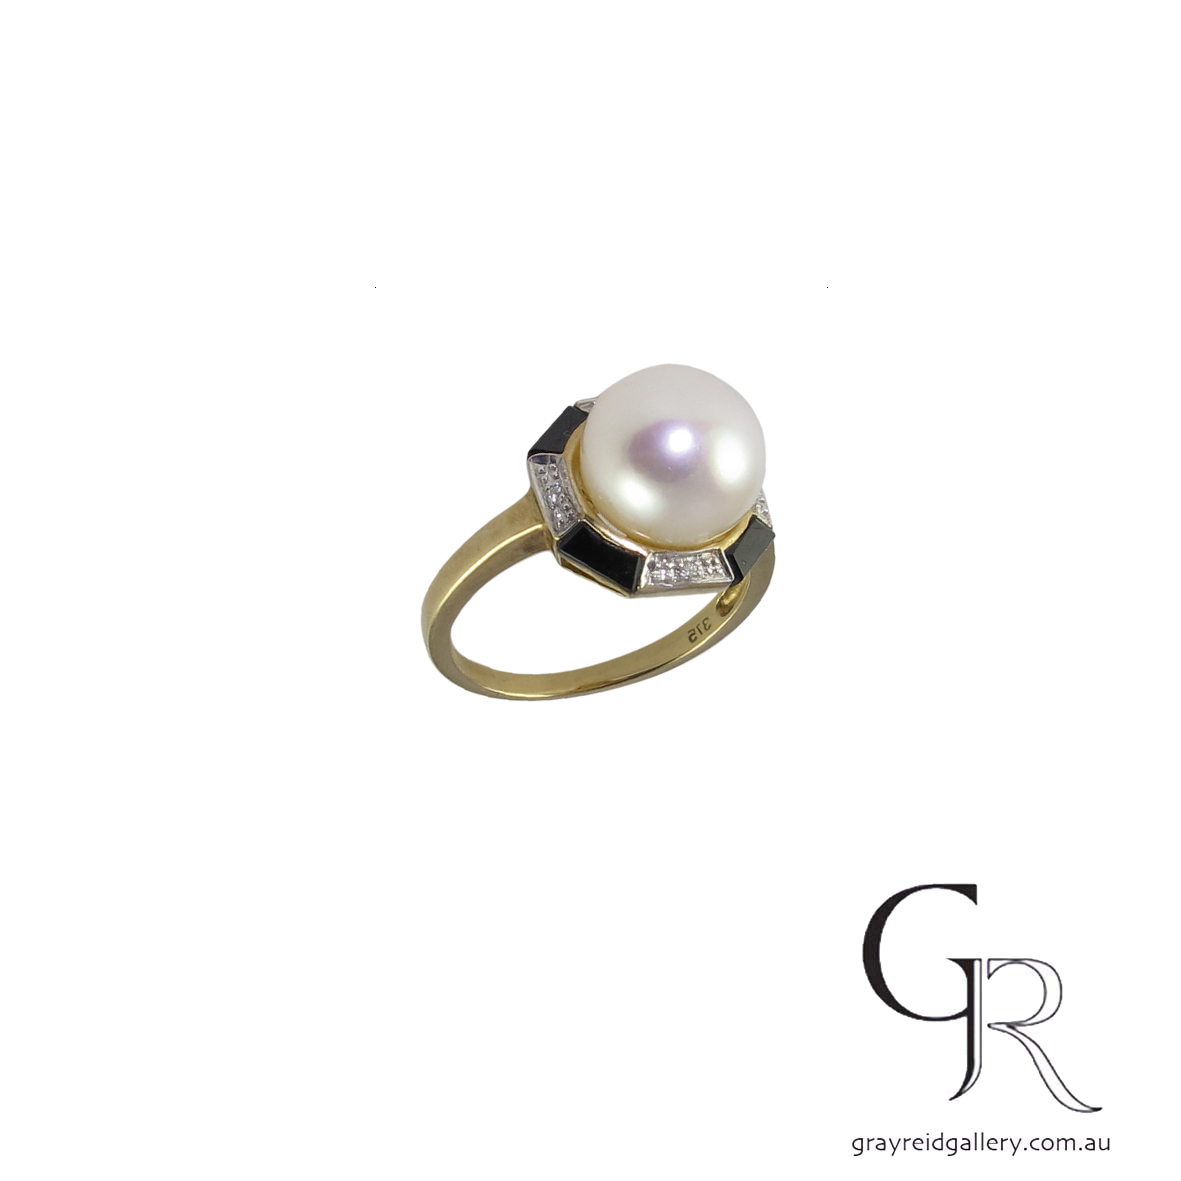 custom made deco style 9ct gold pearl ring 5513 B $1200.jpg